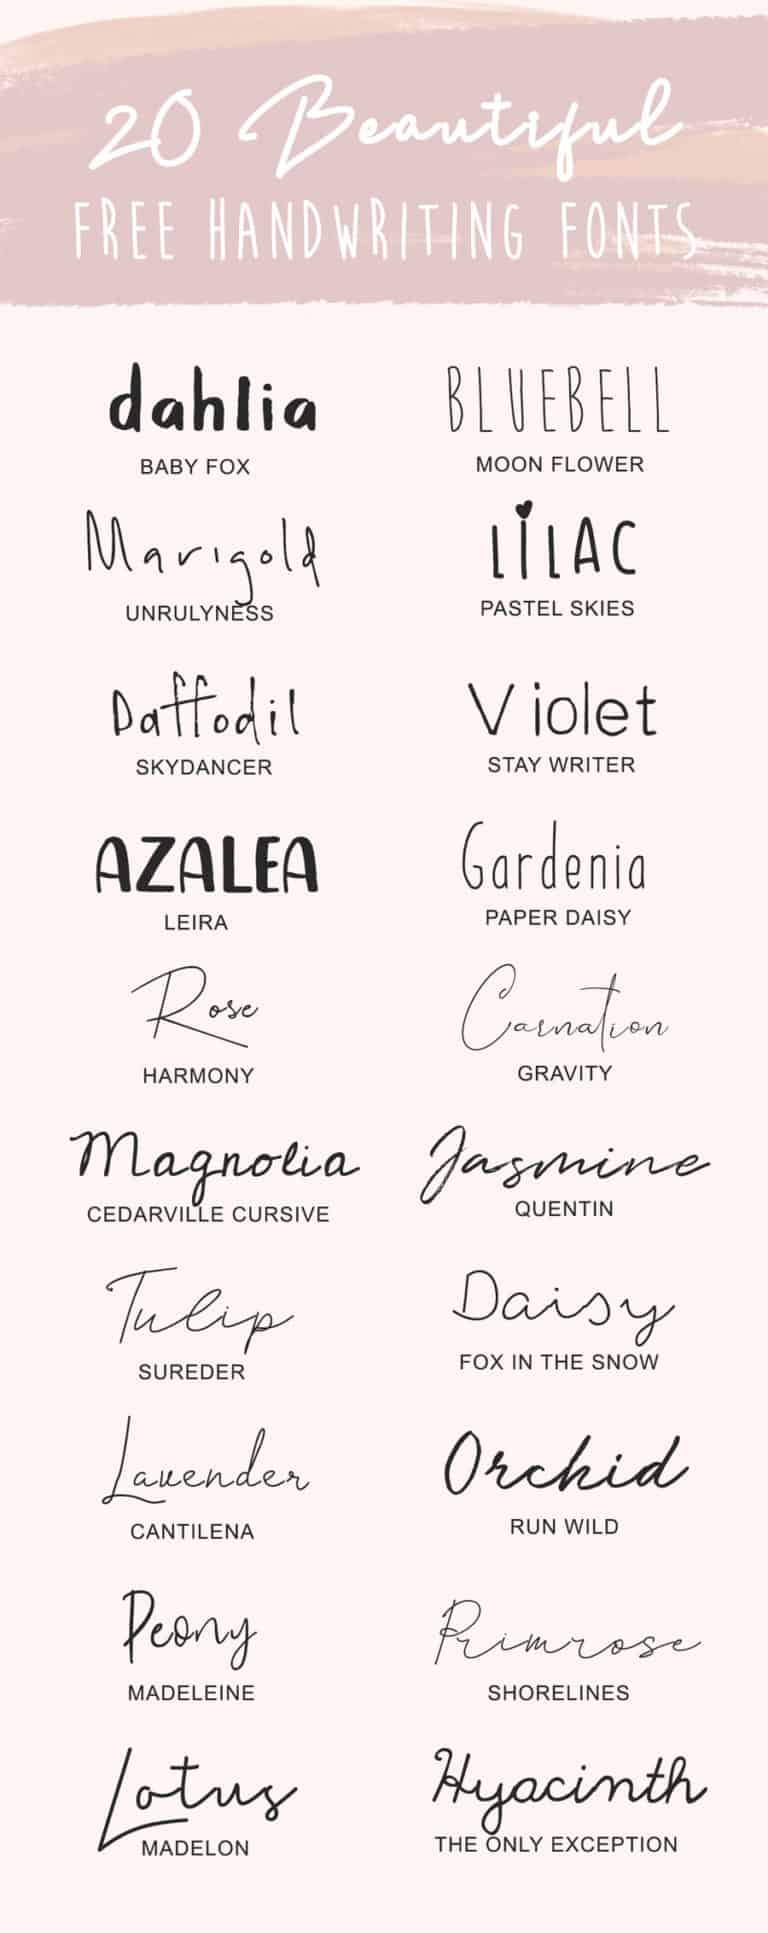 Favorite Free Handwriting Fonts